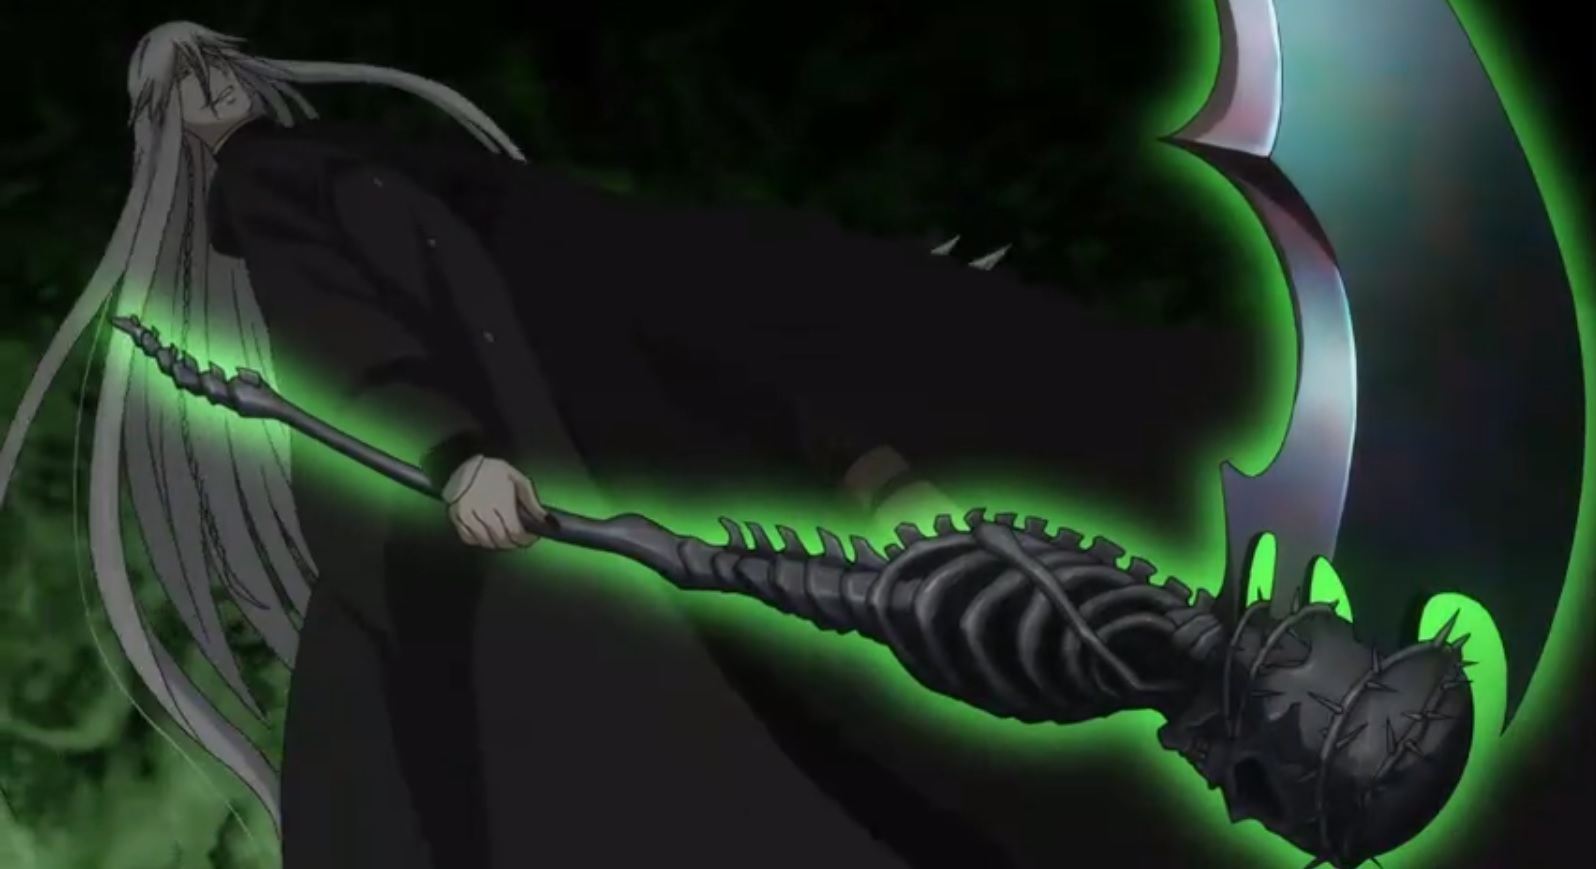 Undertakers death scythe by sasunaru121-d4a51v6